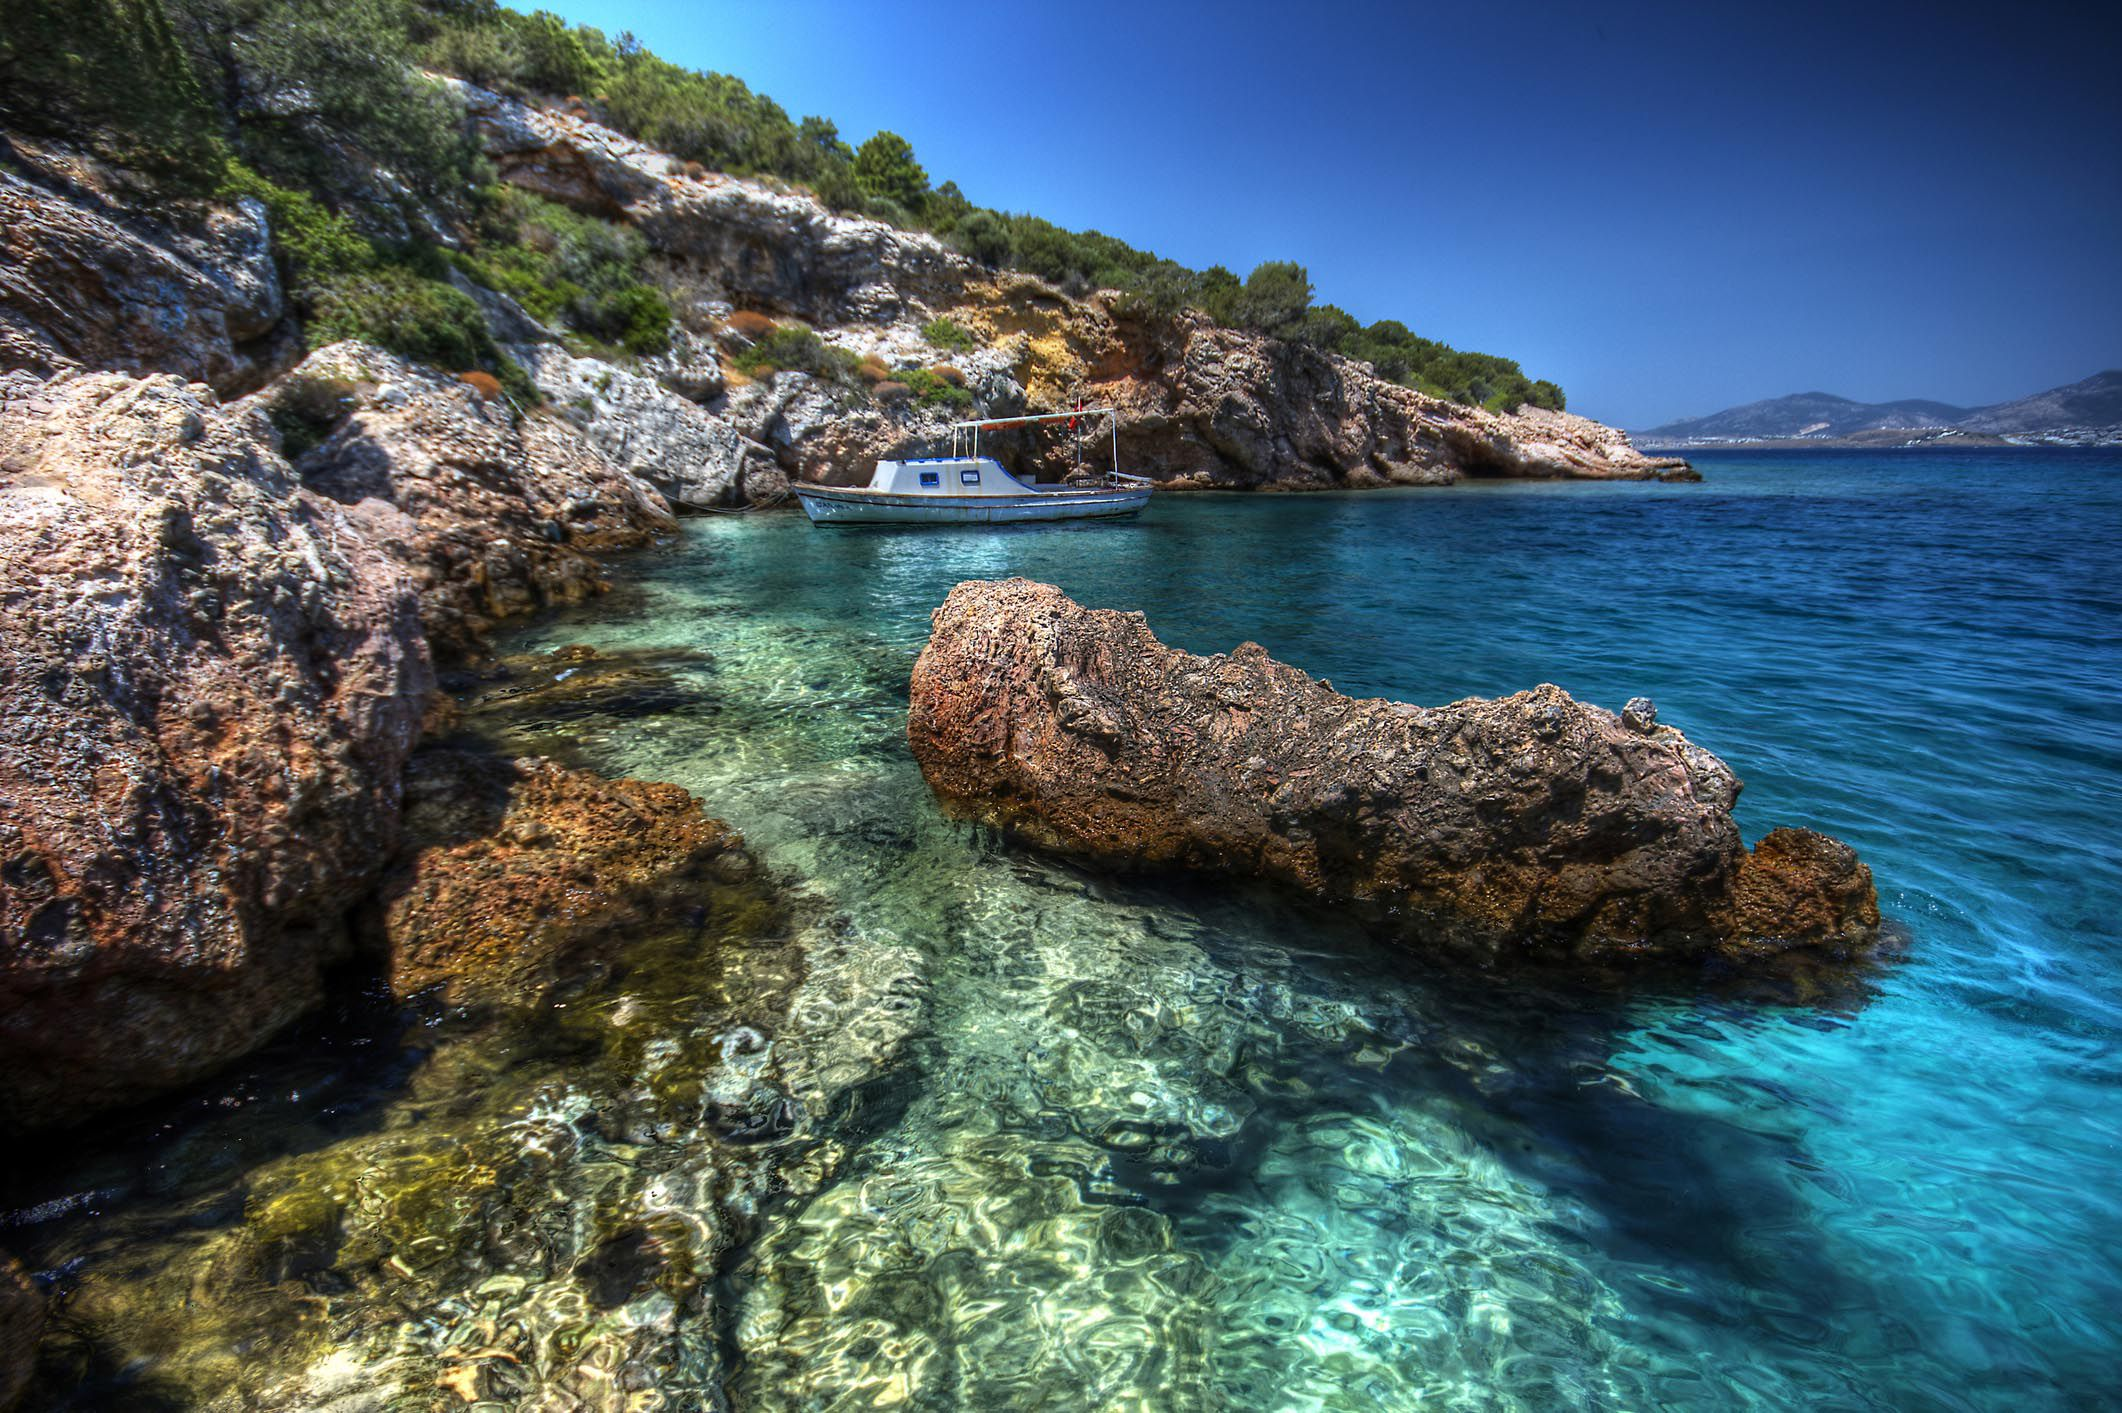 Clearest Water in the World - Clear Bodies of Water